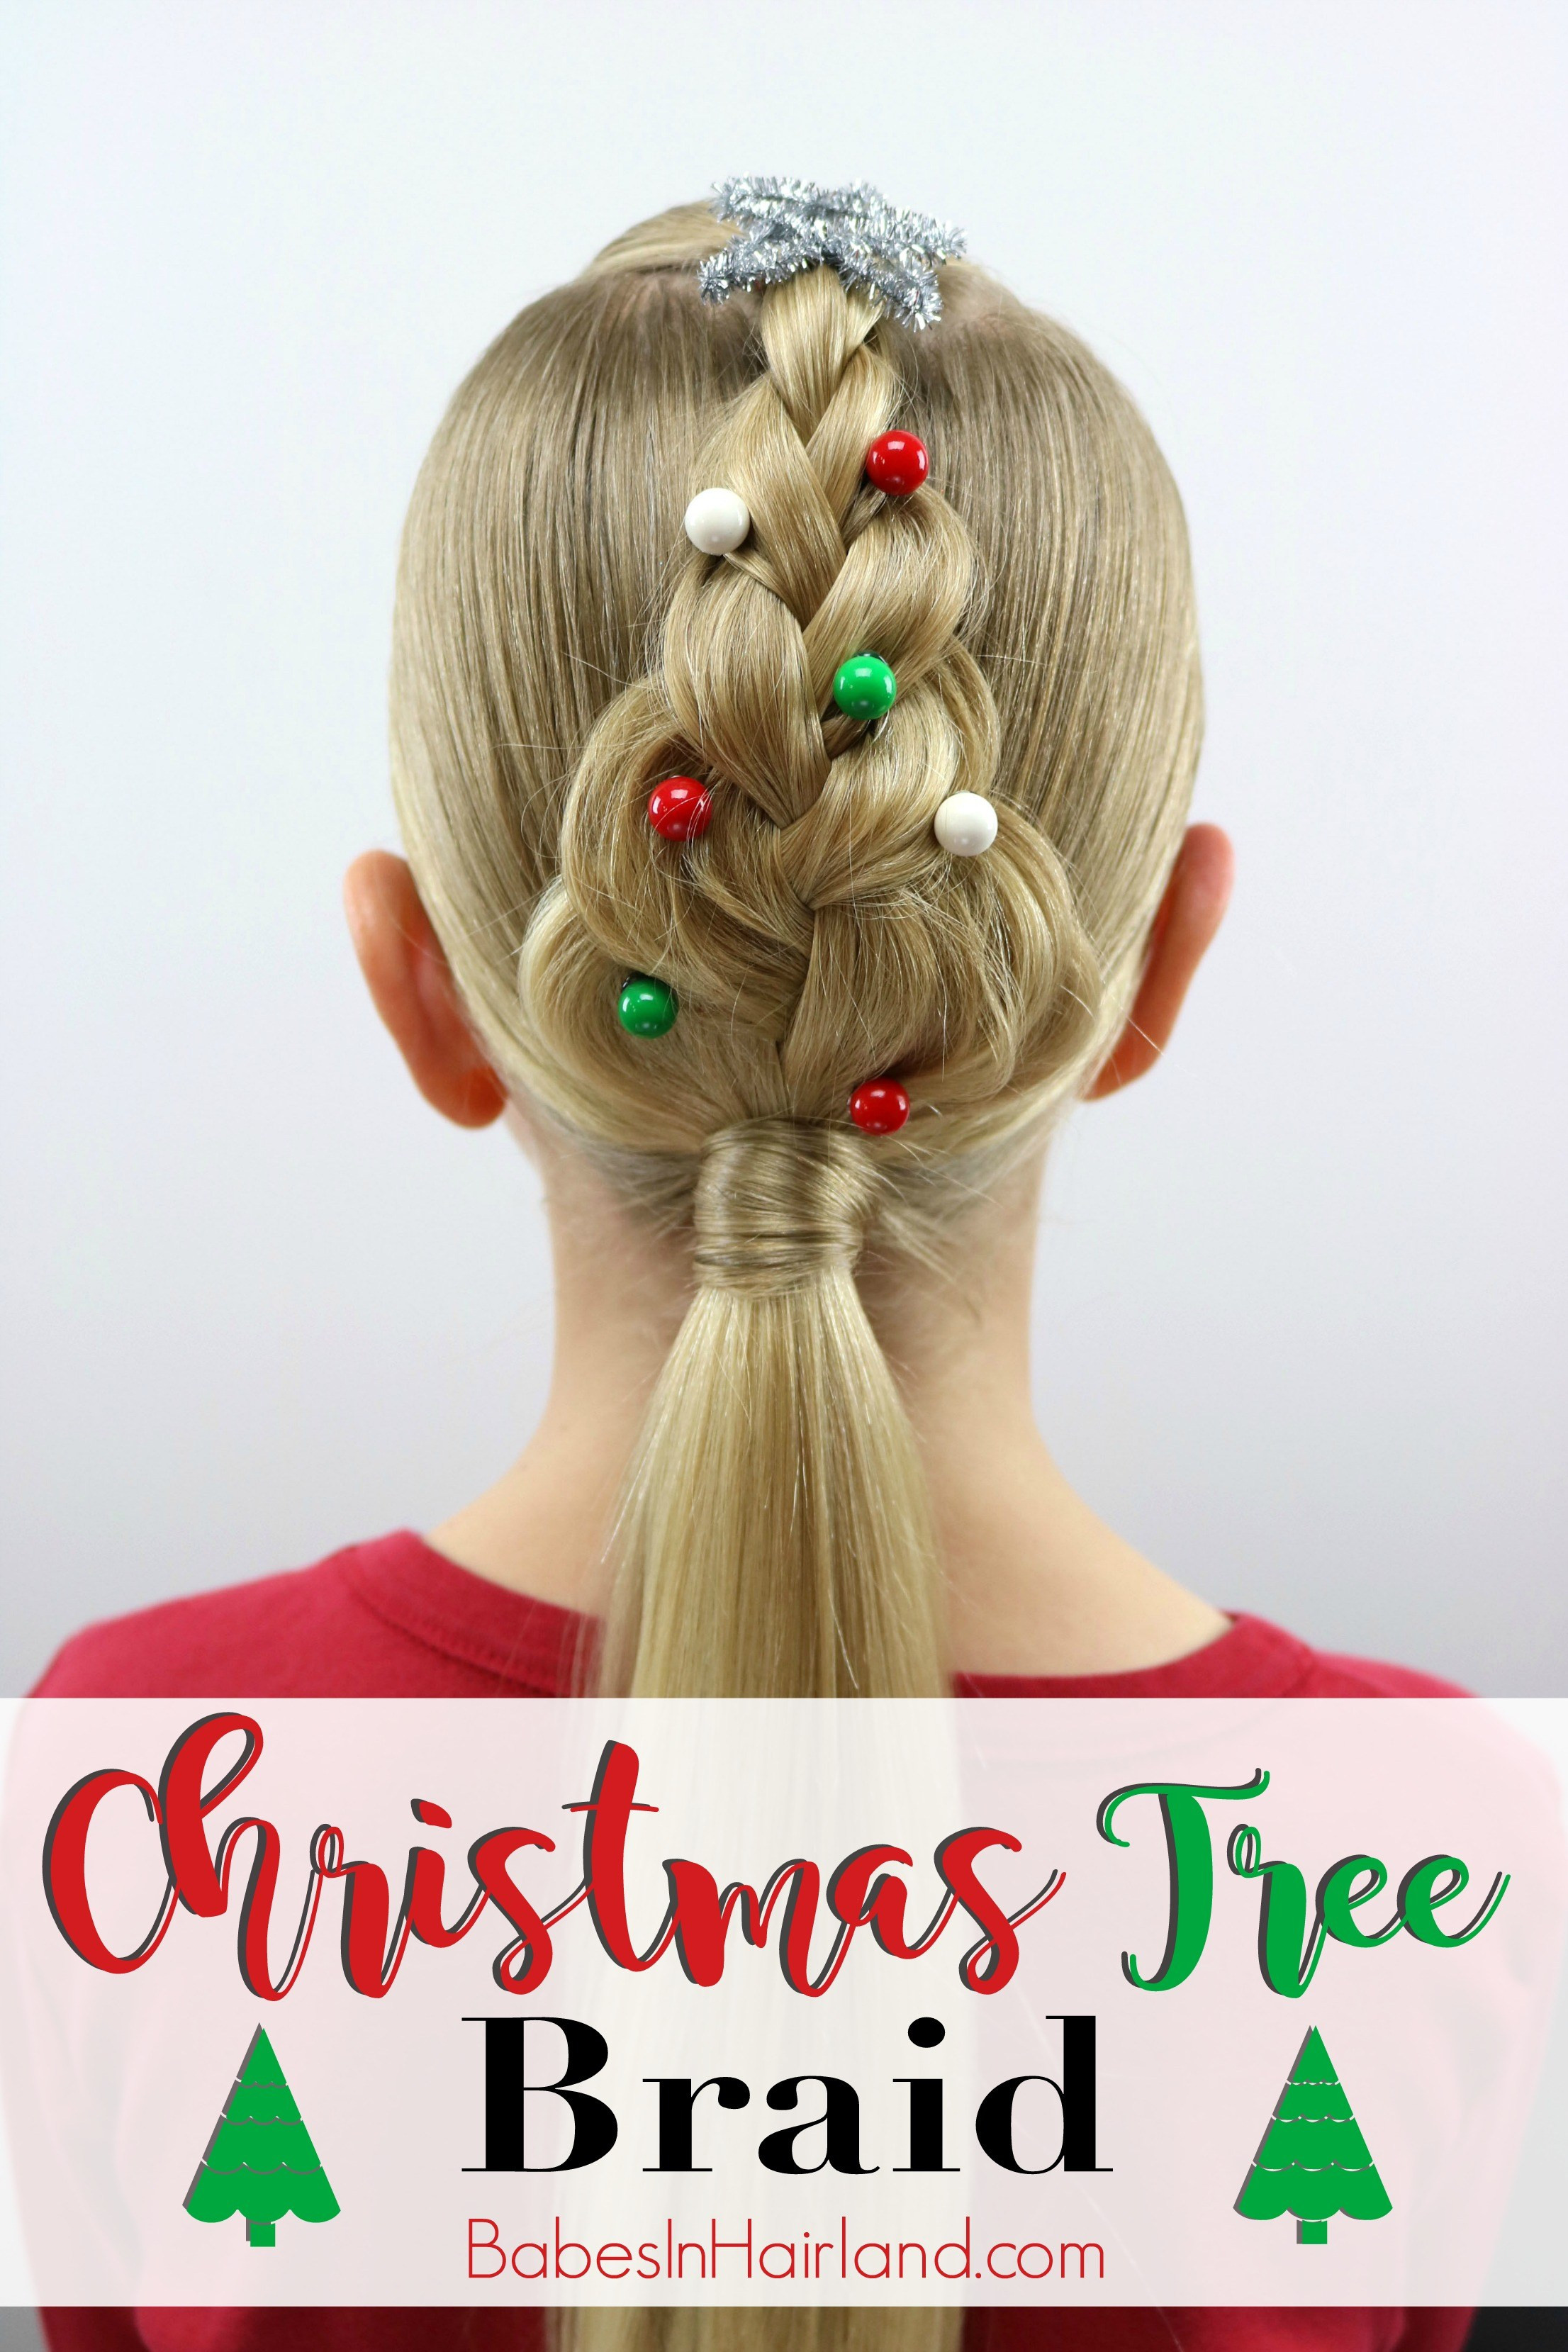 Cute Christmas Hairstyles  Christmas Tree Braid Babes In Hairland